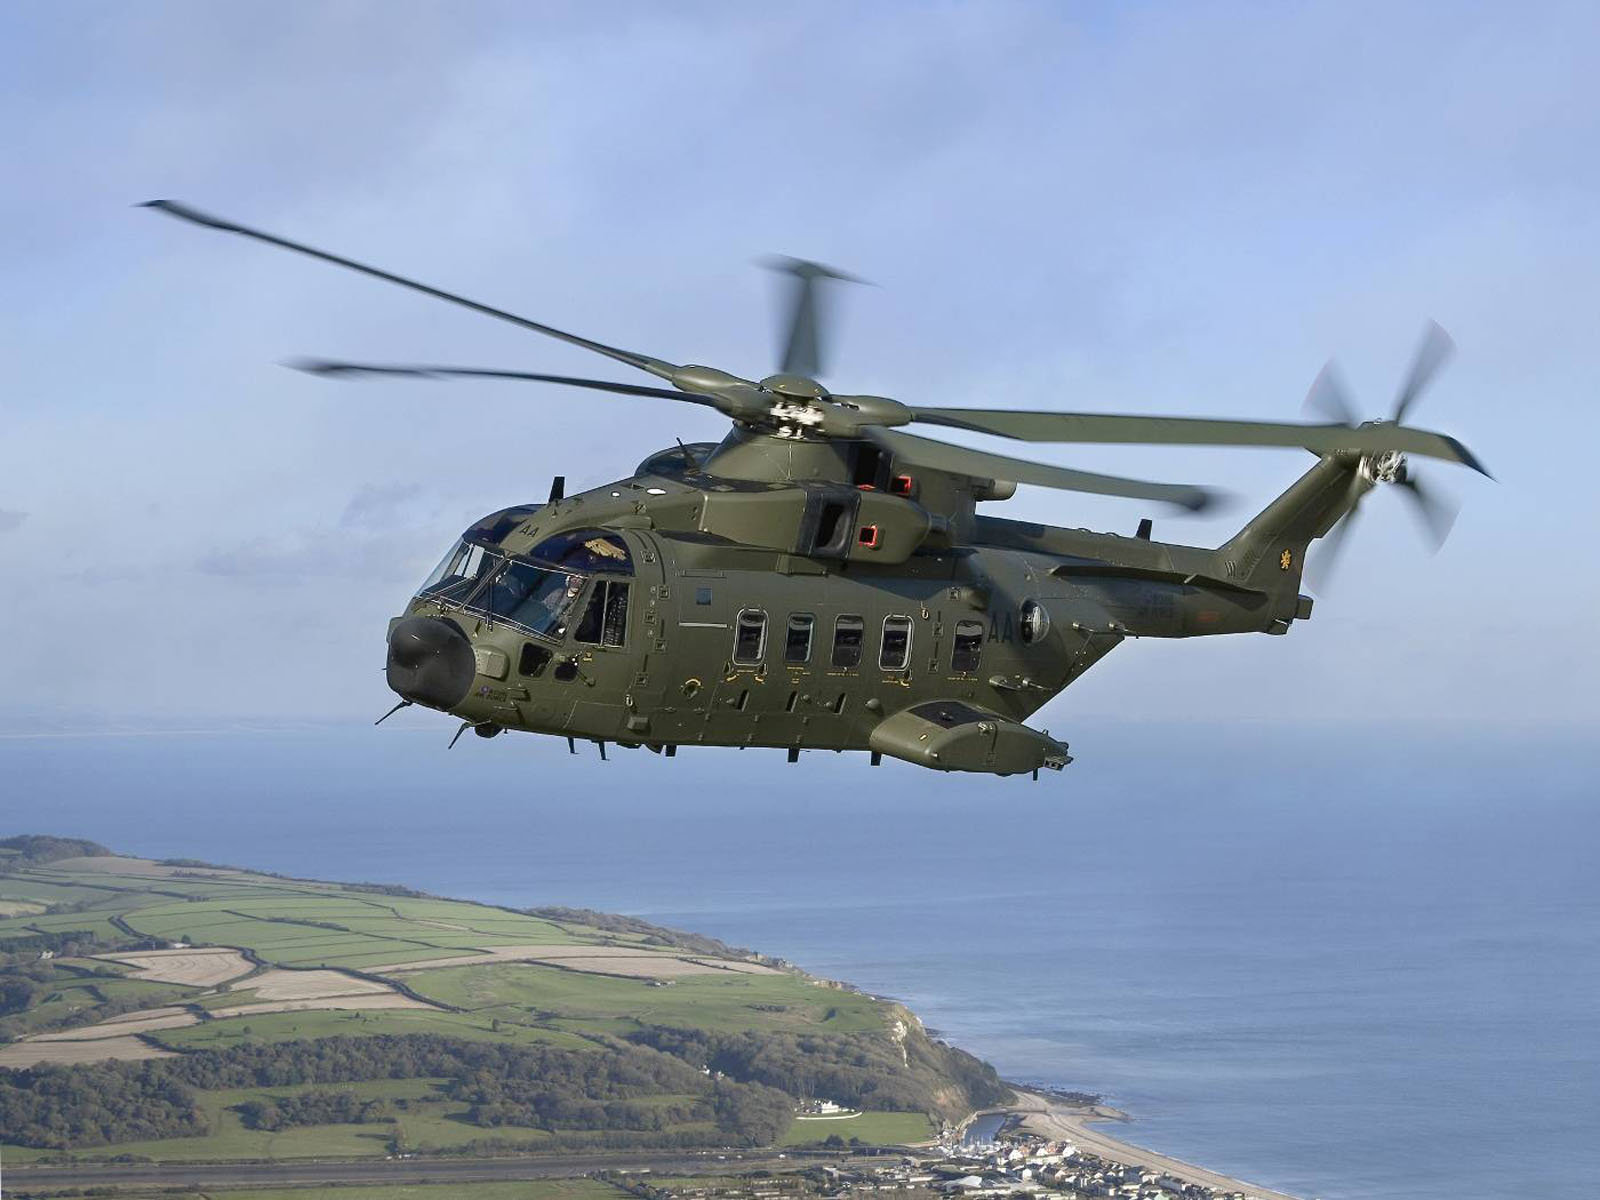 Tag Agusta Westland AW101 Transport Helicopter Wallpapers Images 1600x1200